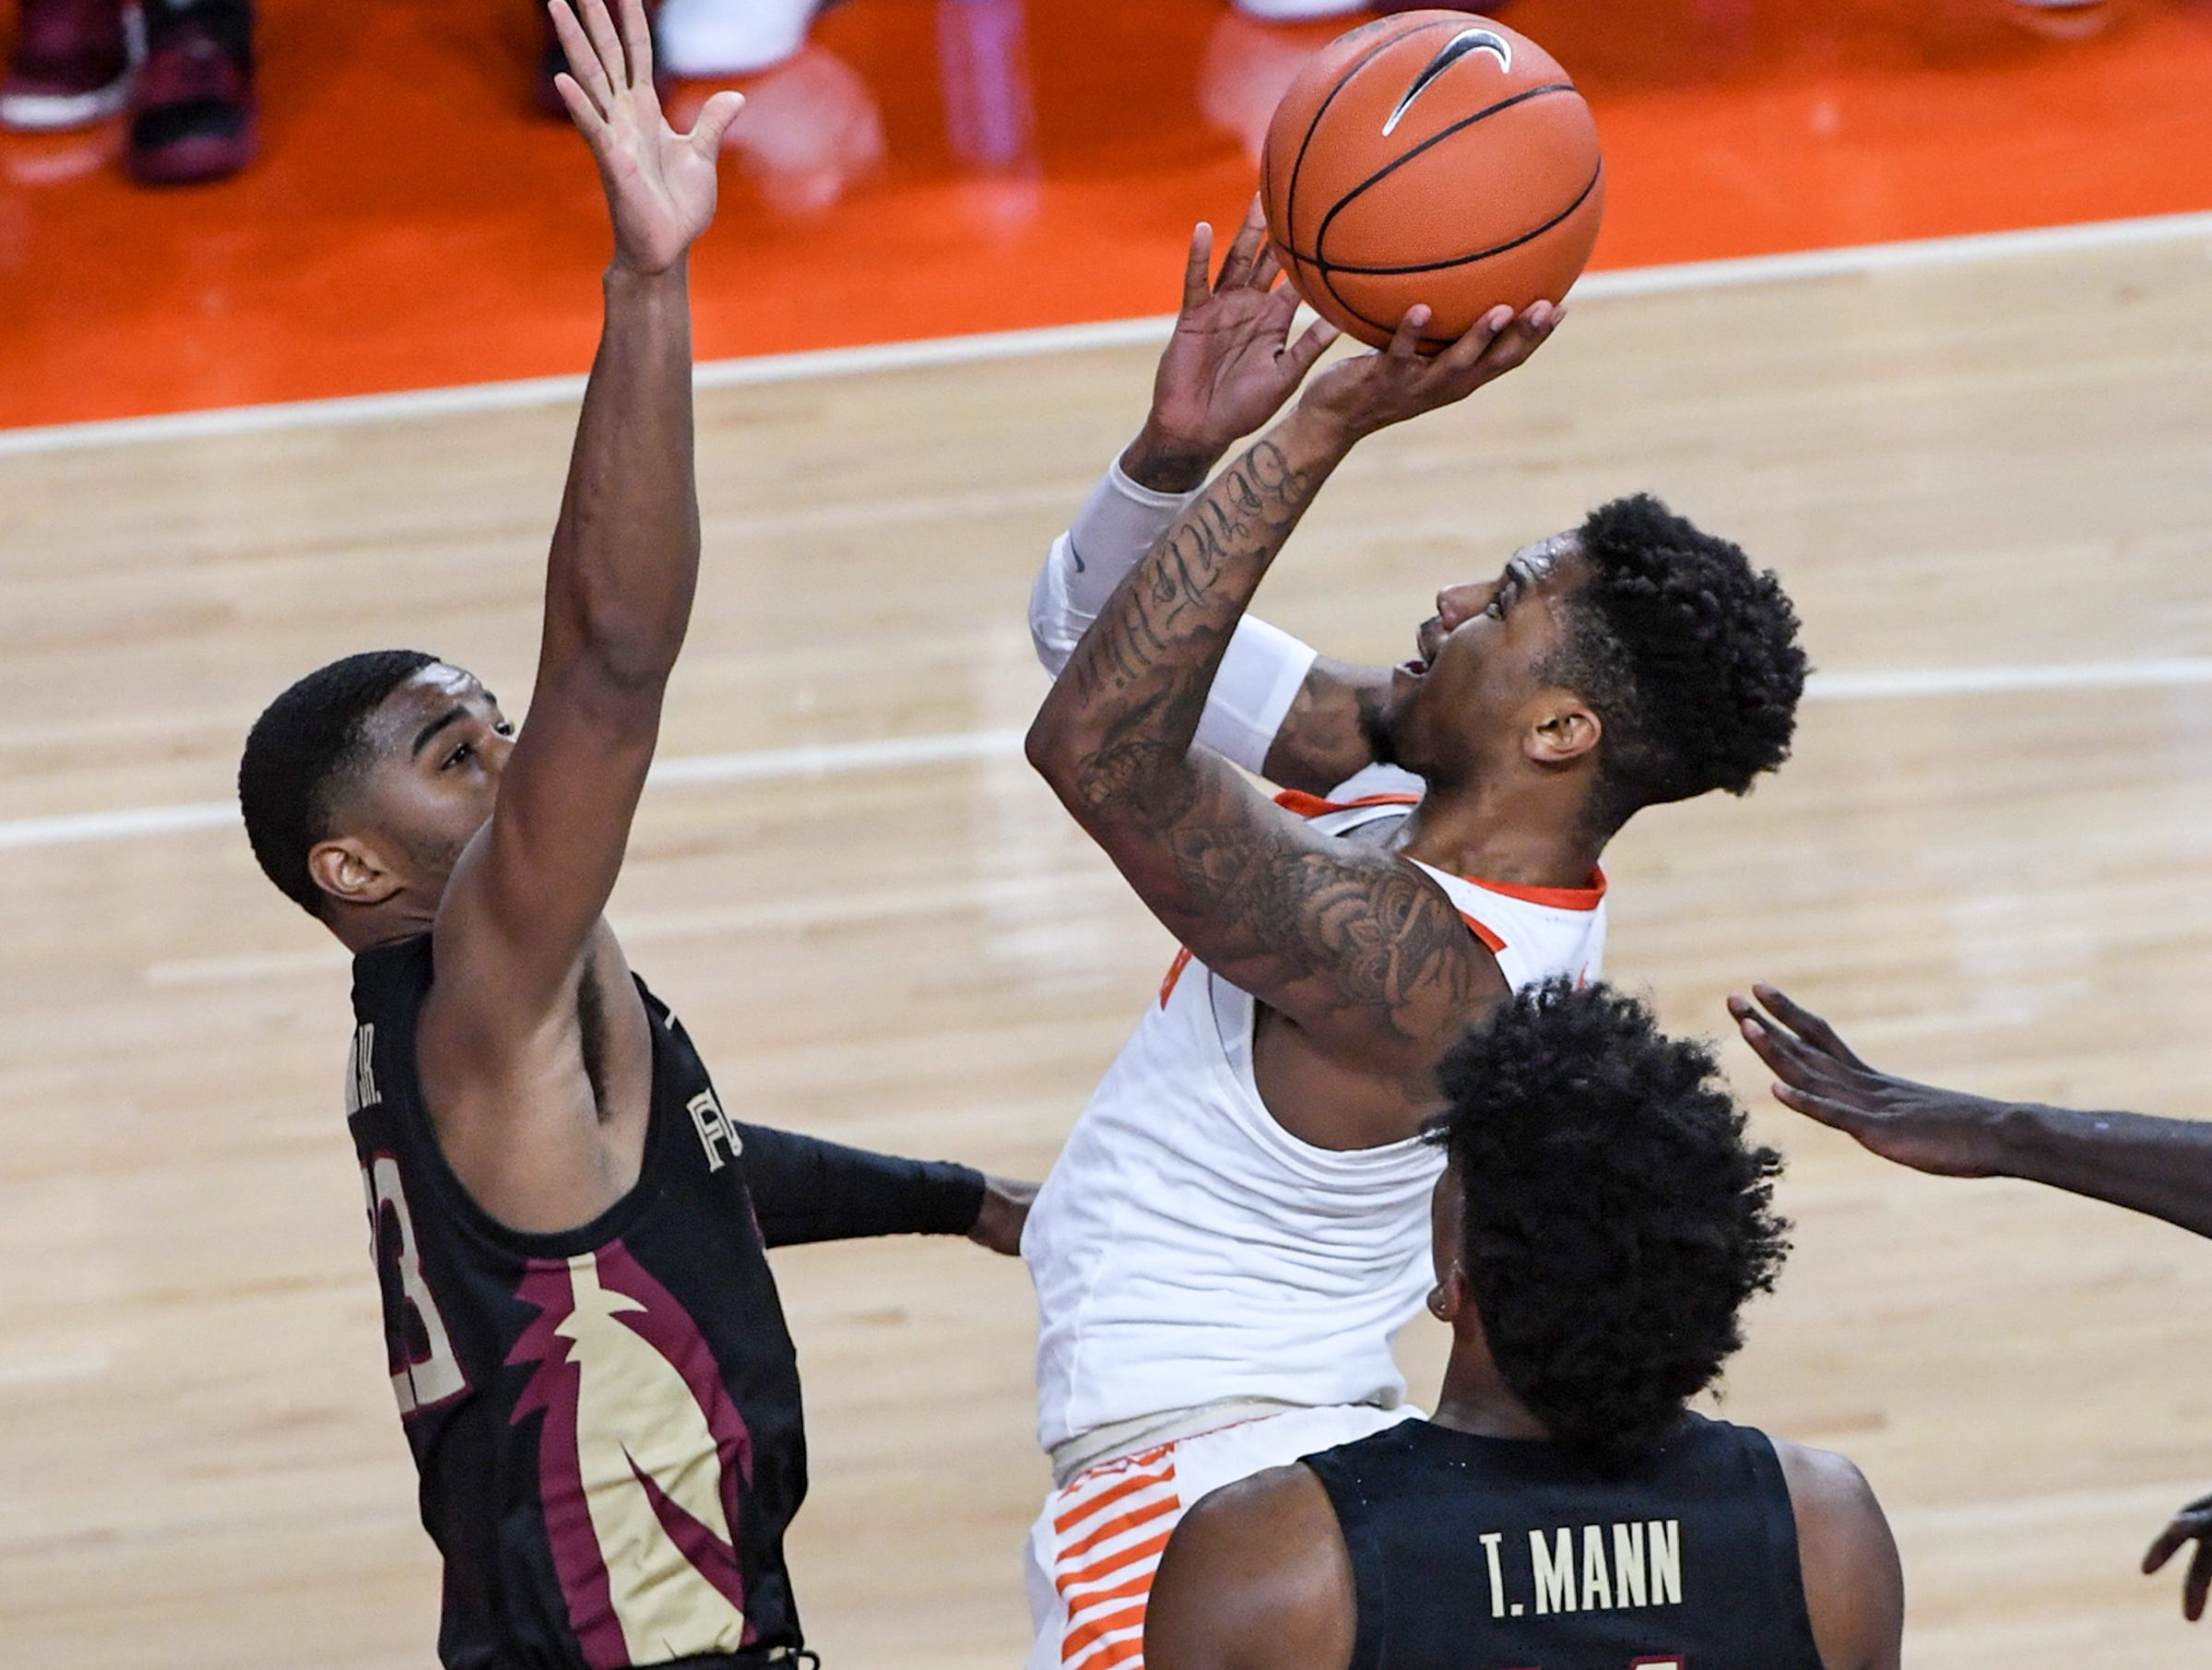 Clemson guard Shelton Mitchell (4) shoots near Florida State guard M.J. Walker(23) during the first half at Littlejohn Coliseum in Clemson Tuesday, February 19, 2019.